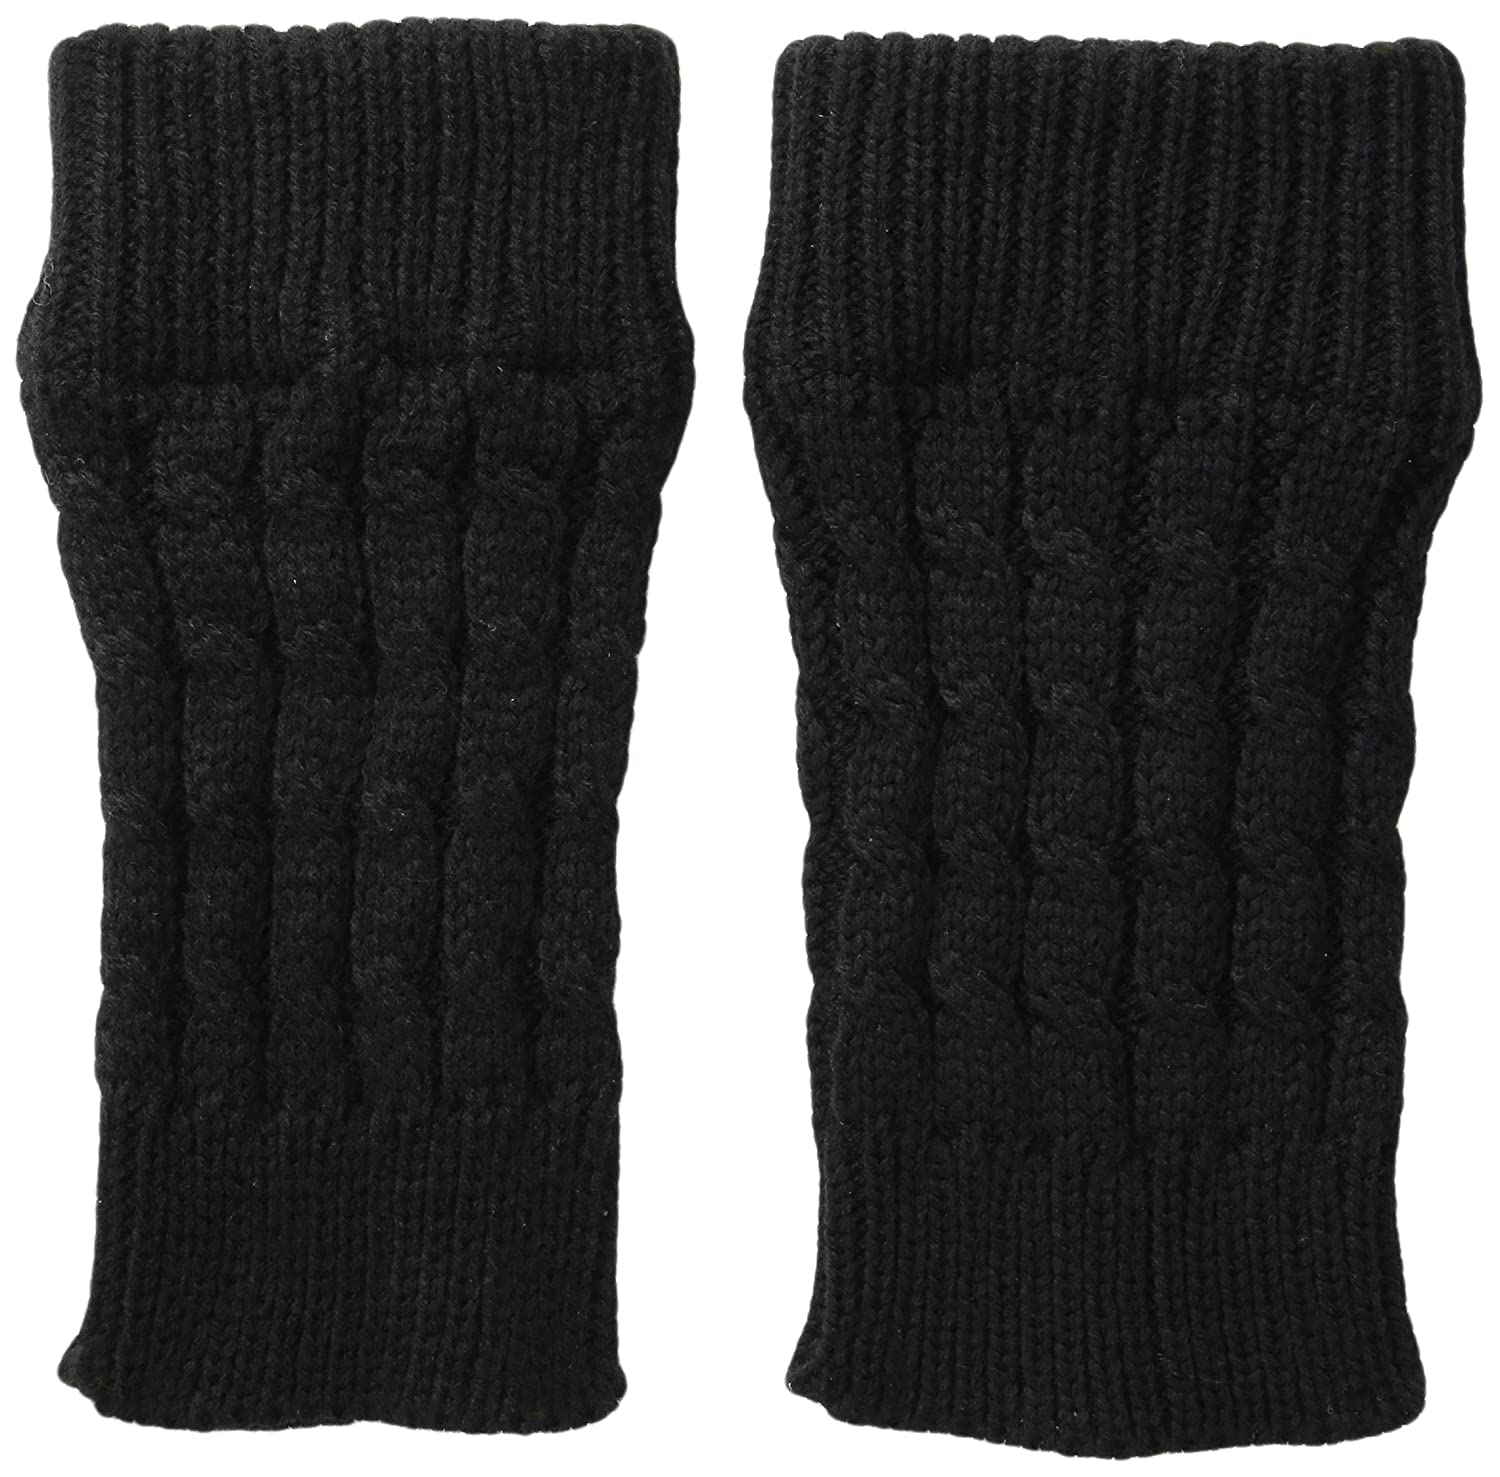 K. Bell Women's Cable Boot Cuff Black 9-11 kswf15w174-01